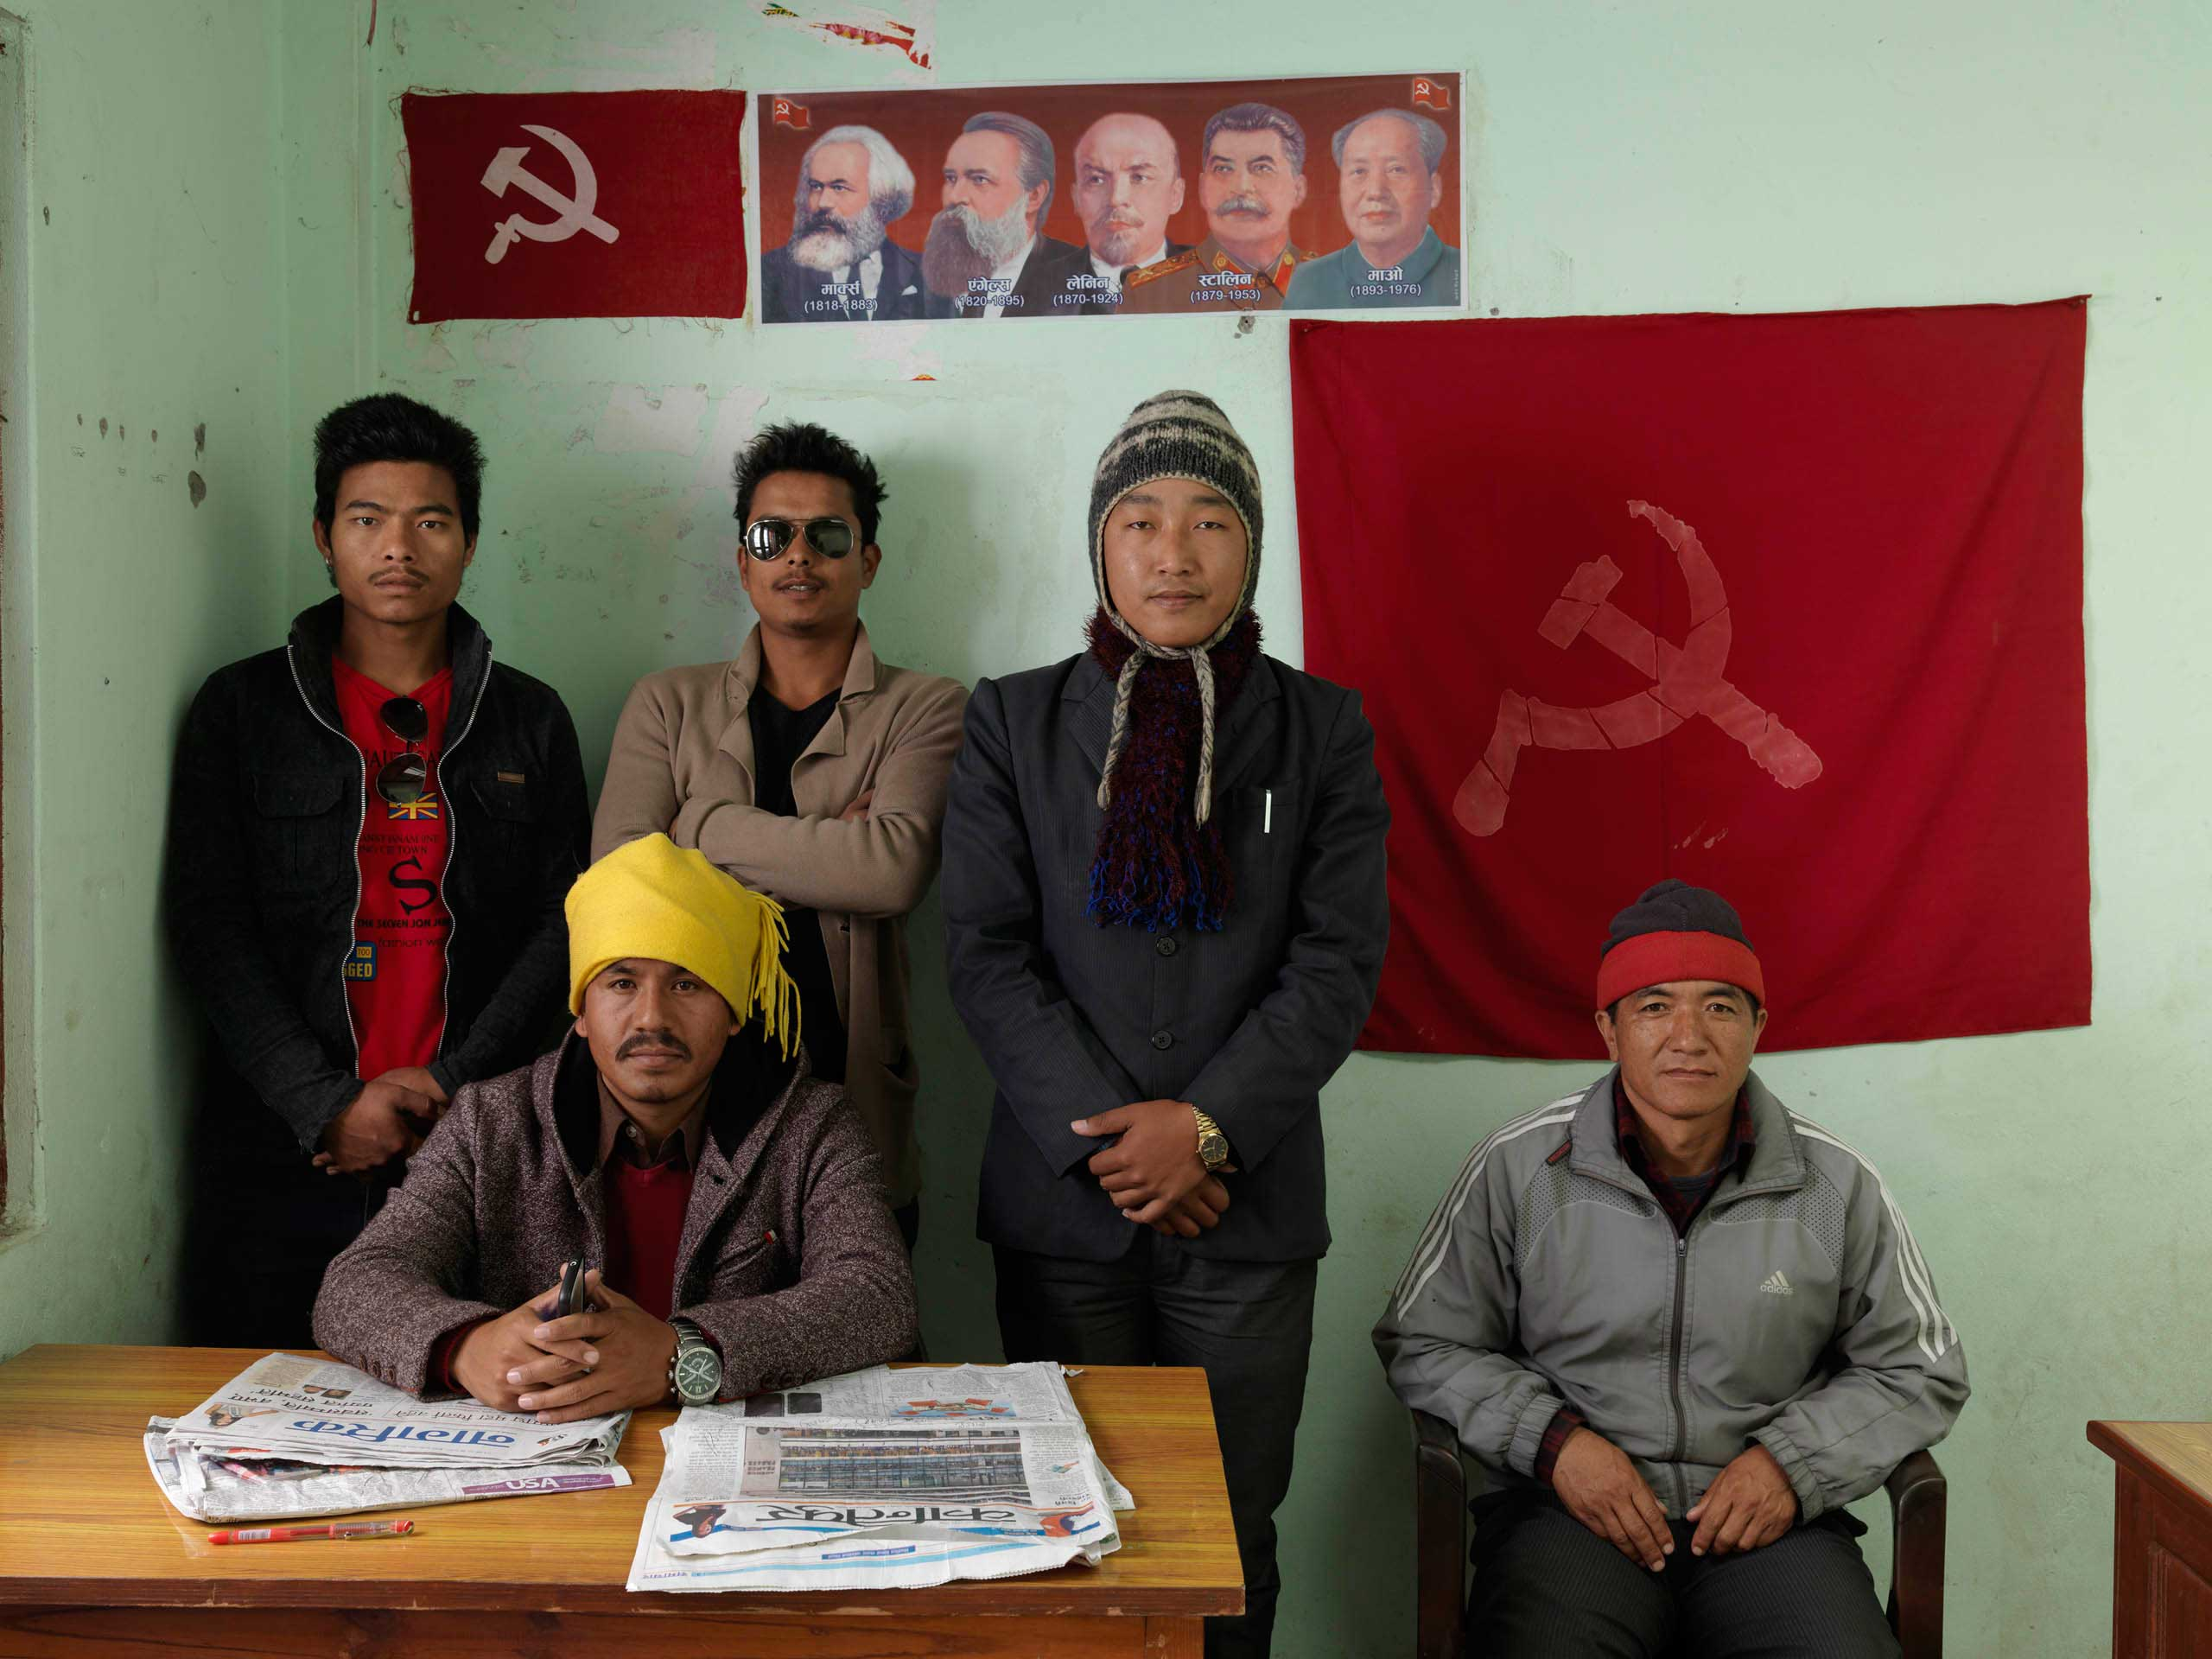 The Constituency Incharge, three members of the youth wing, and a journalist/editor of a pro-party newspaper in the CPN-Maoist (Baidya) district contact office in Pokhara, Kaski district. Baidya's party broke away from the main UCPN Maoists in 2012. It refused to participate in the 2013 elections or take up any seats in the second Constituent Assembly.